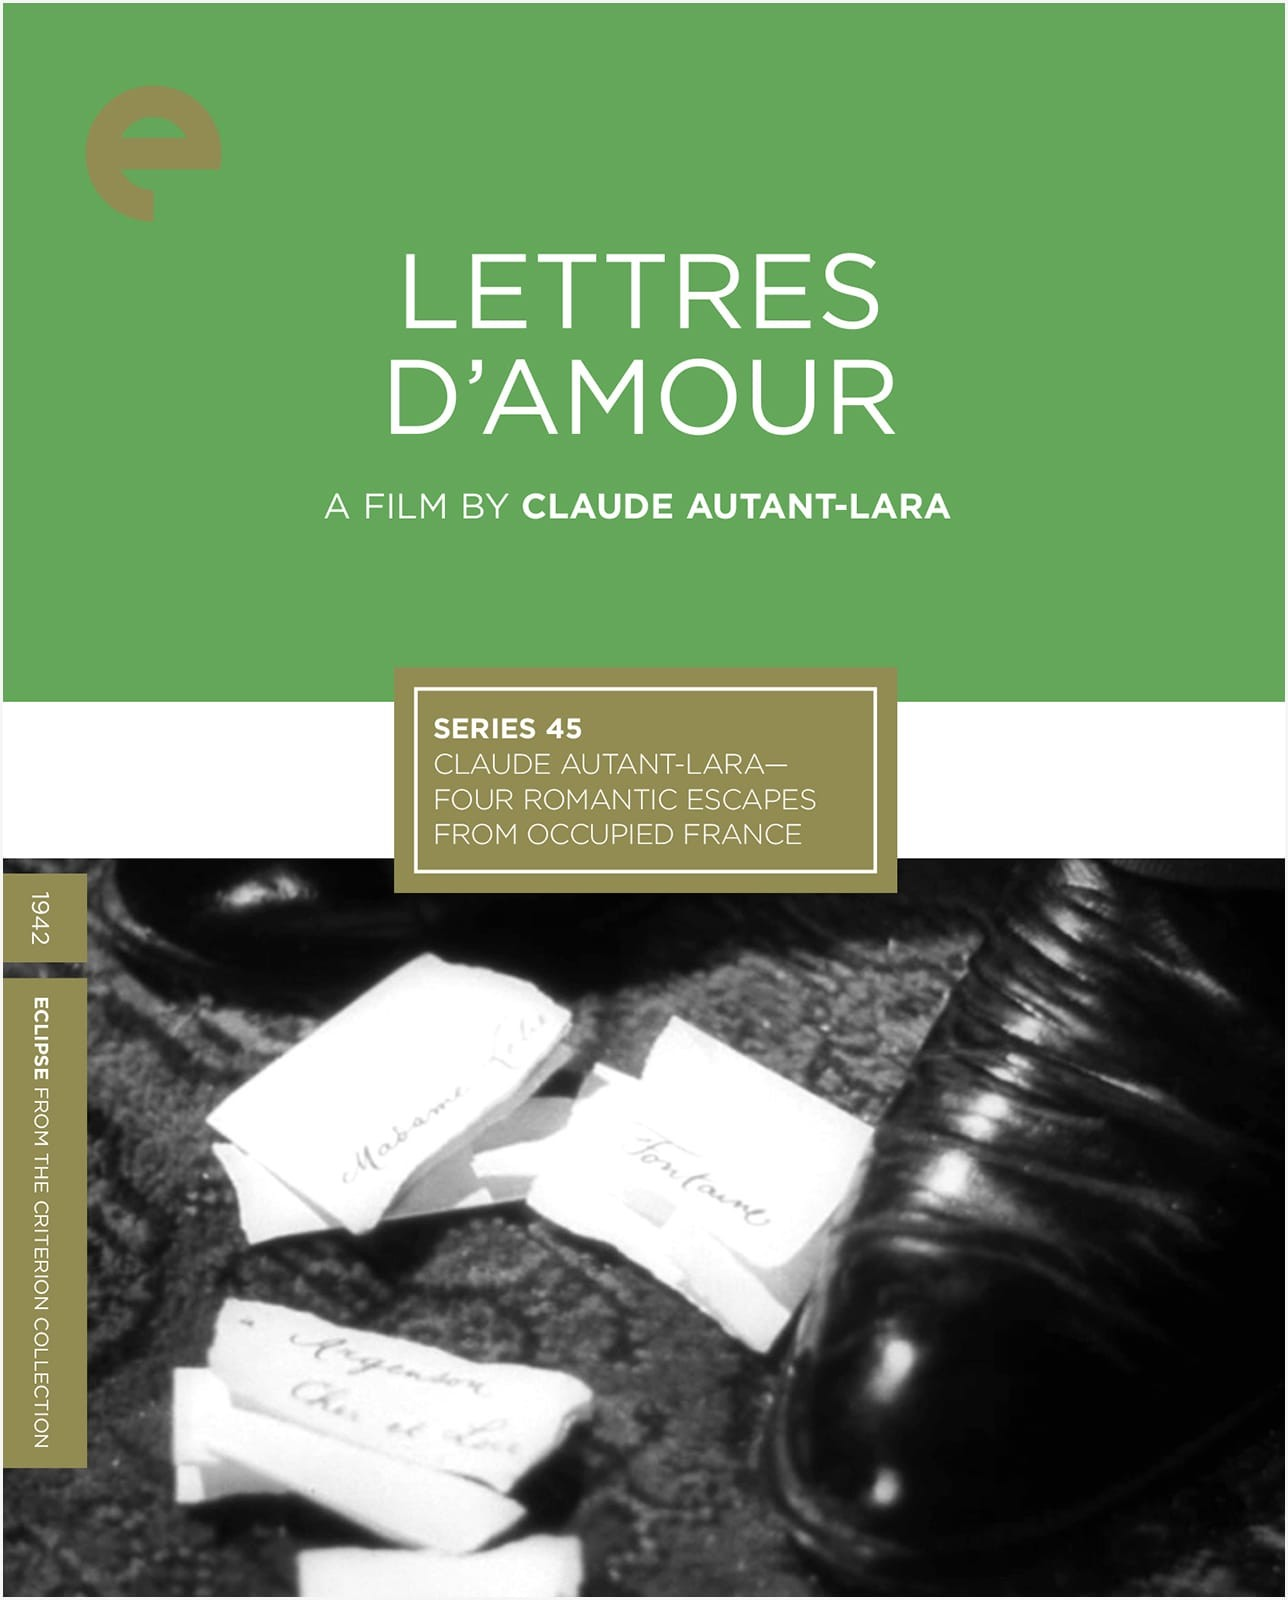 Image D Amour Lettres D Amour 1942 The Criterion Collection